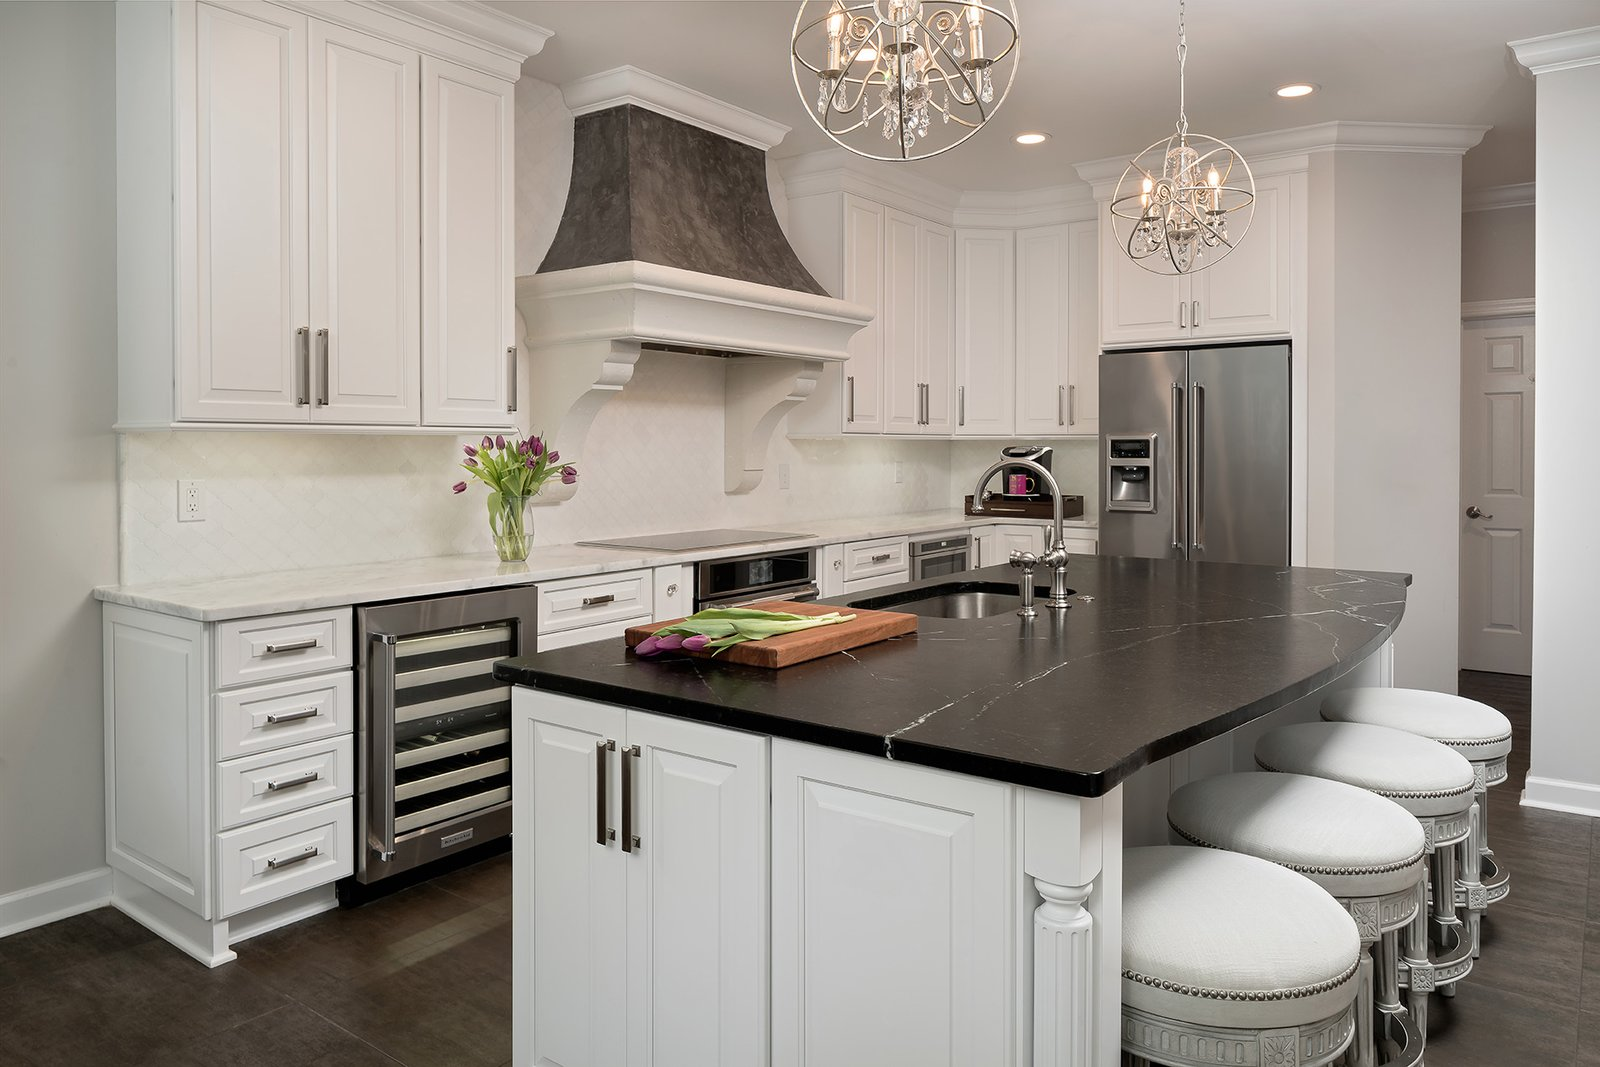 Delicieux Chic Black And White Kitchen In Charlotte, NC